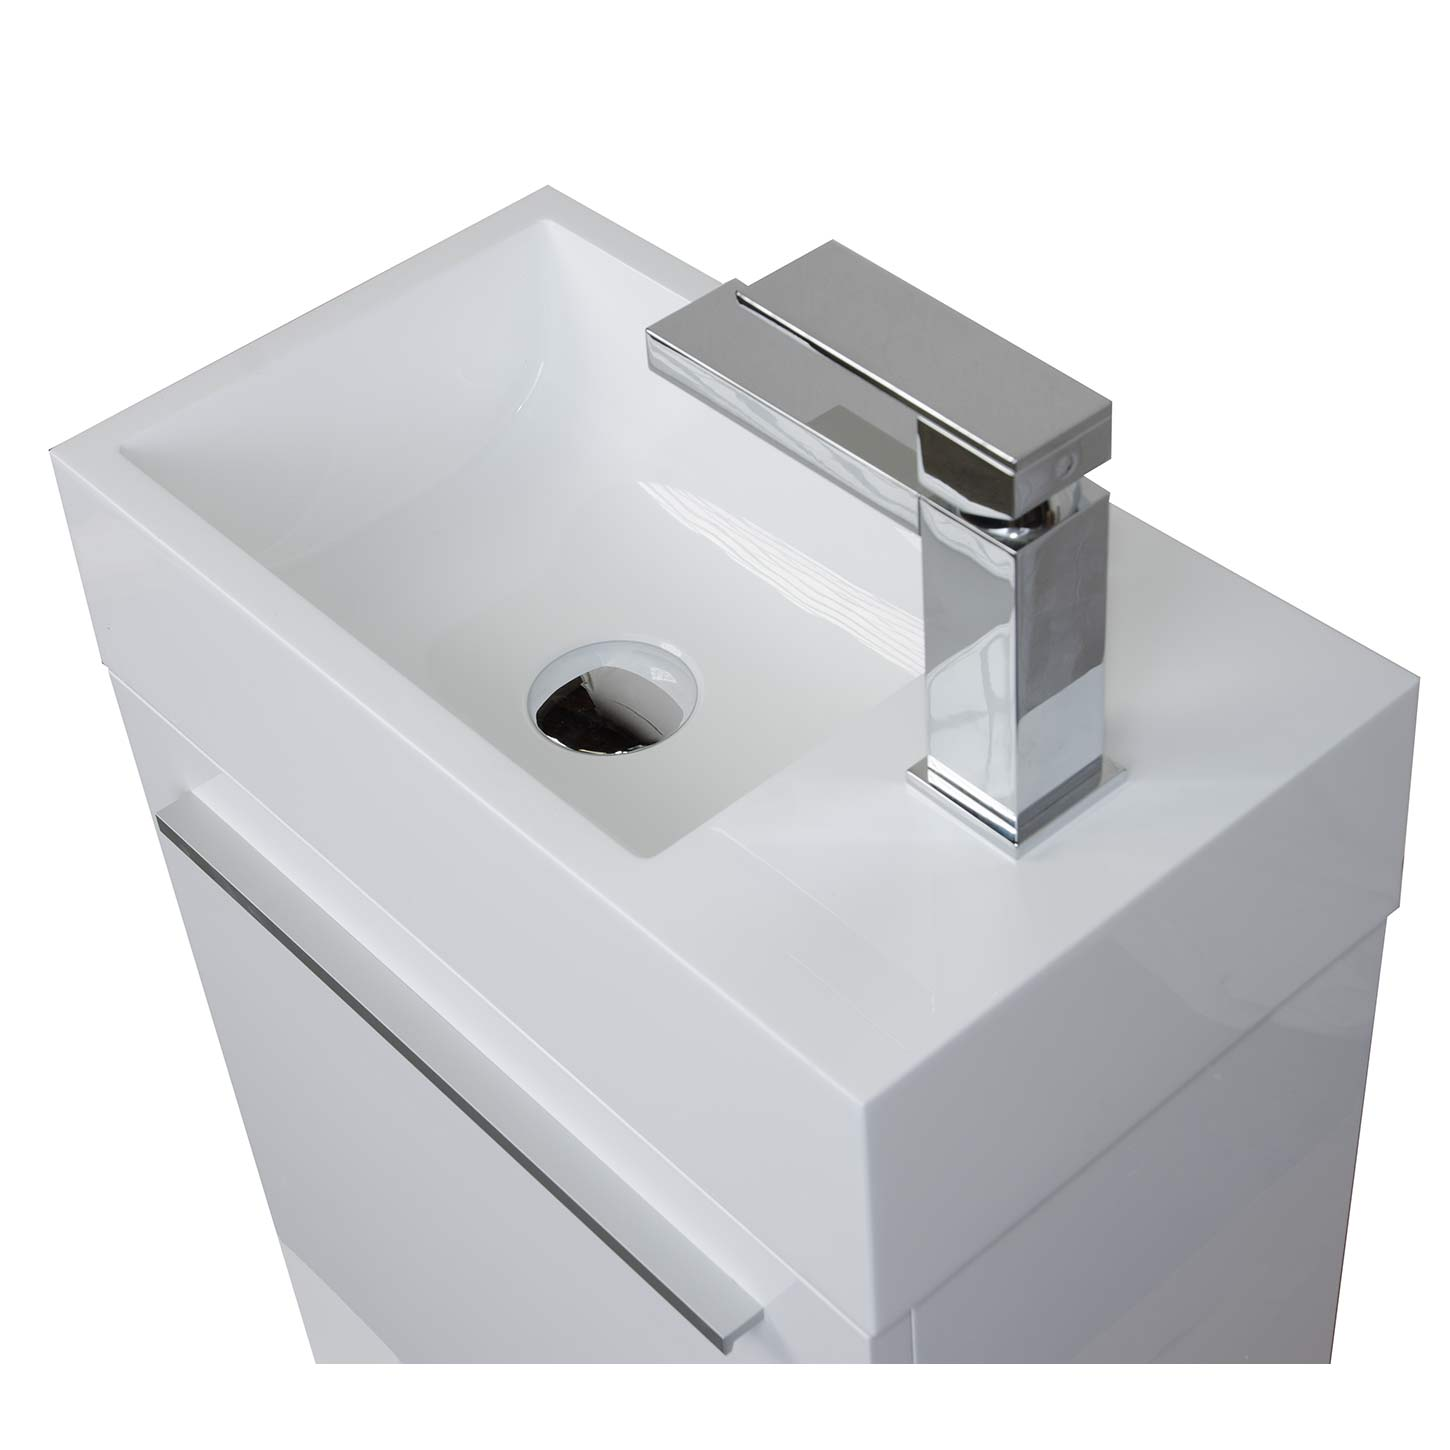 Buy 18 Inch Bathroom Vanity Set Glossy White TN T460 HGW